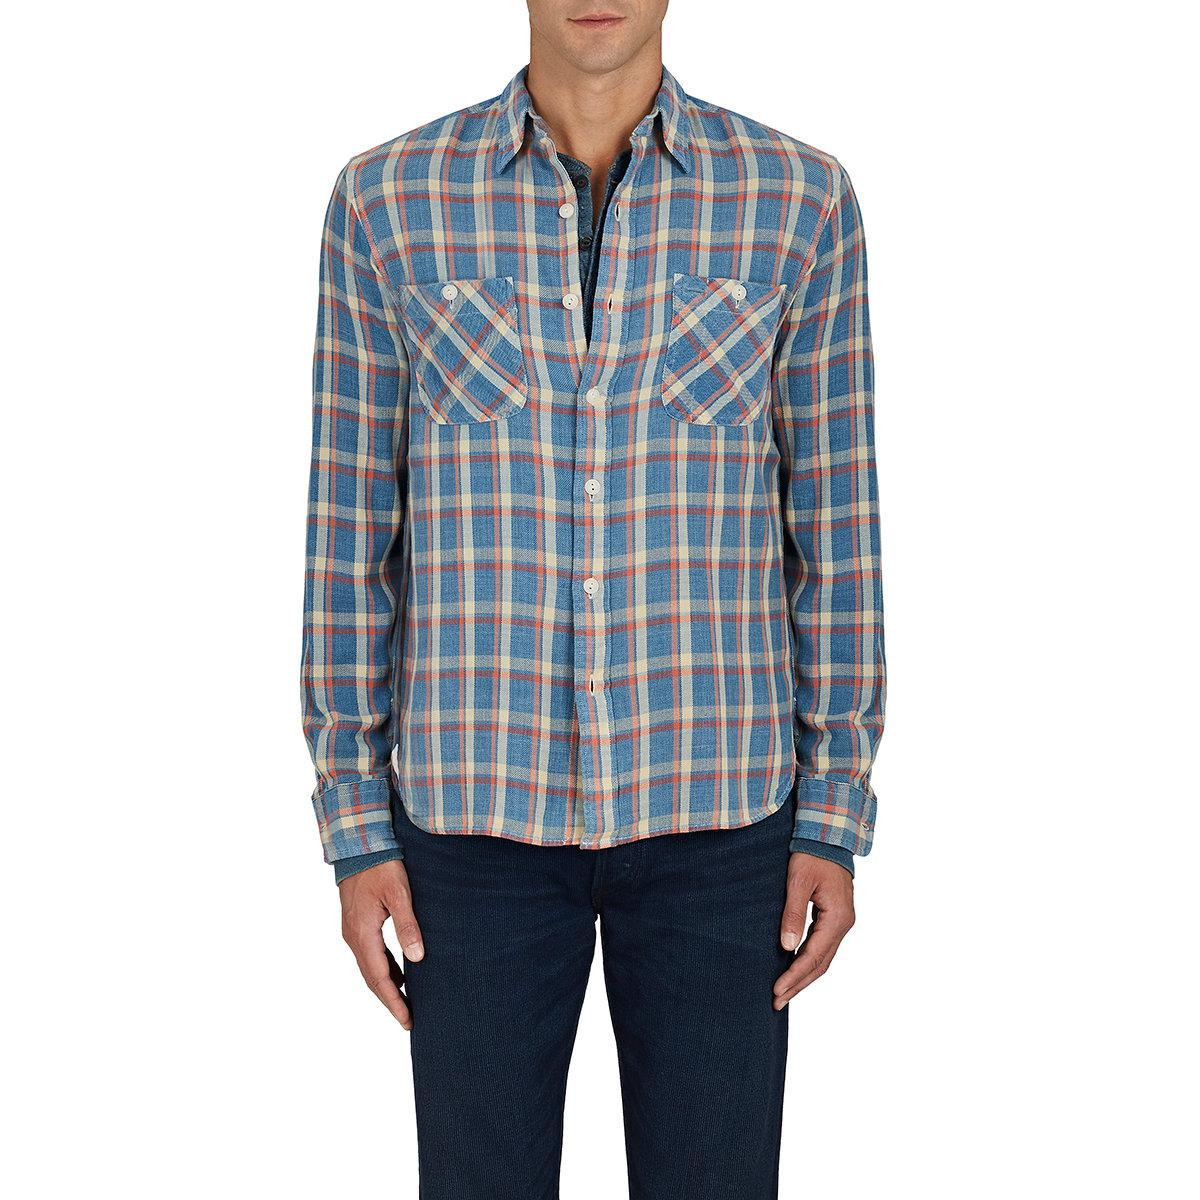 Rrl cody plaid cotton work shirt in blue for men lyst for Blue cotton work shirts